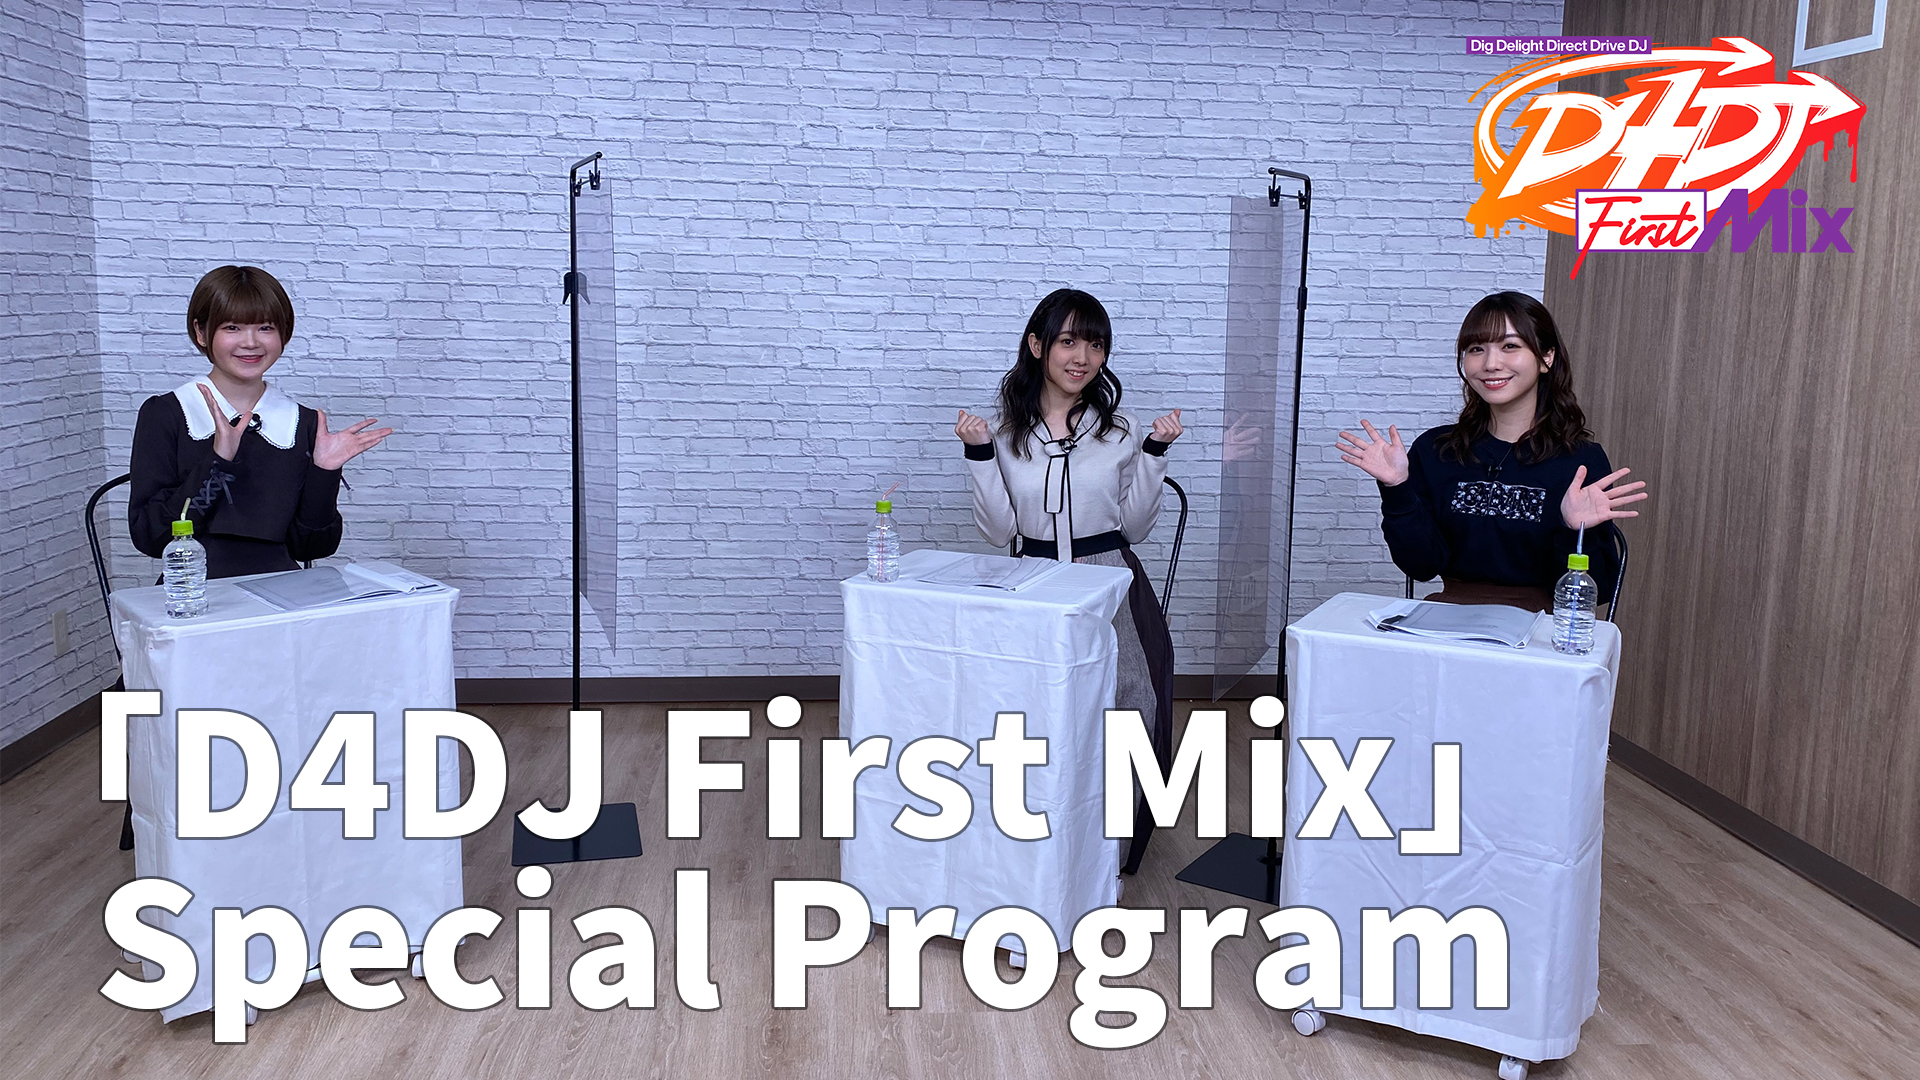 『D4DJ First Mix』Special Programより (C)bushiroad All Rights Reserved. (C) Donuts Co. Ltd. All rights reserved.